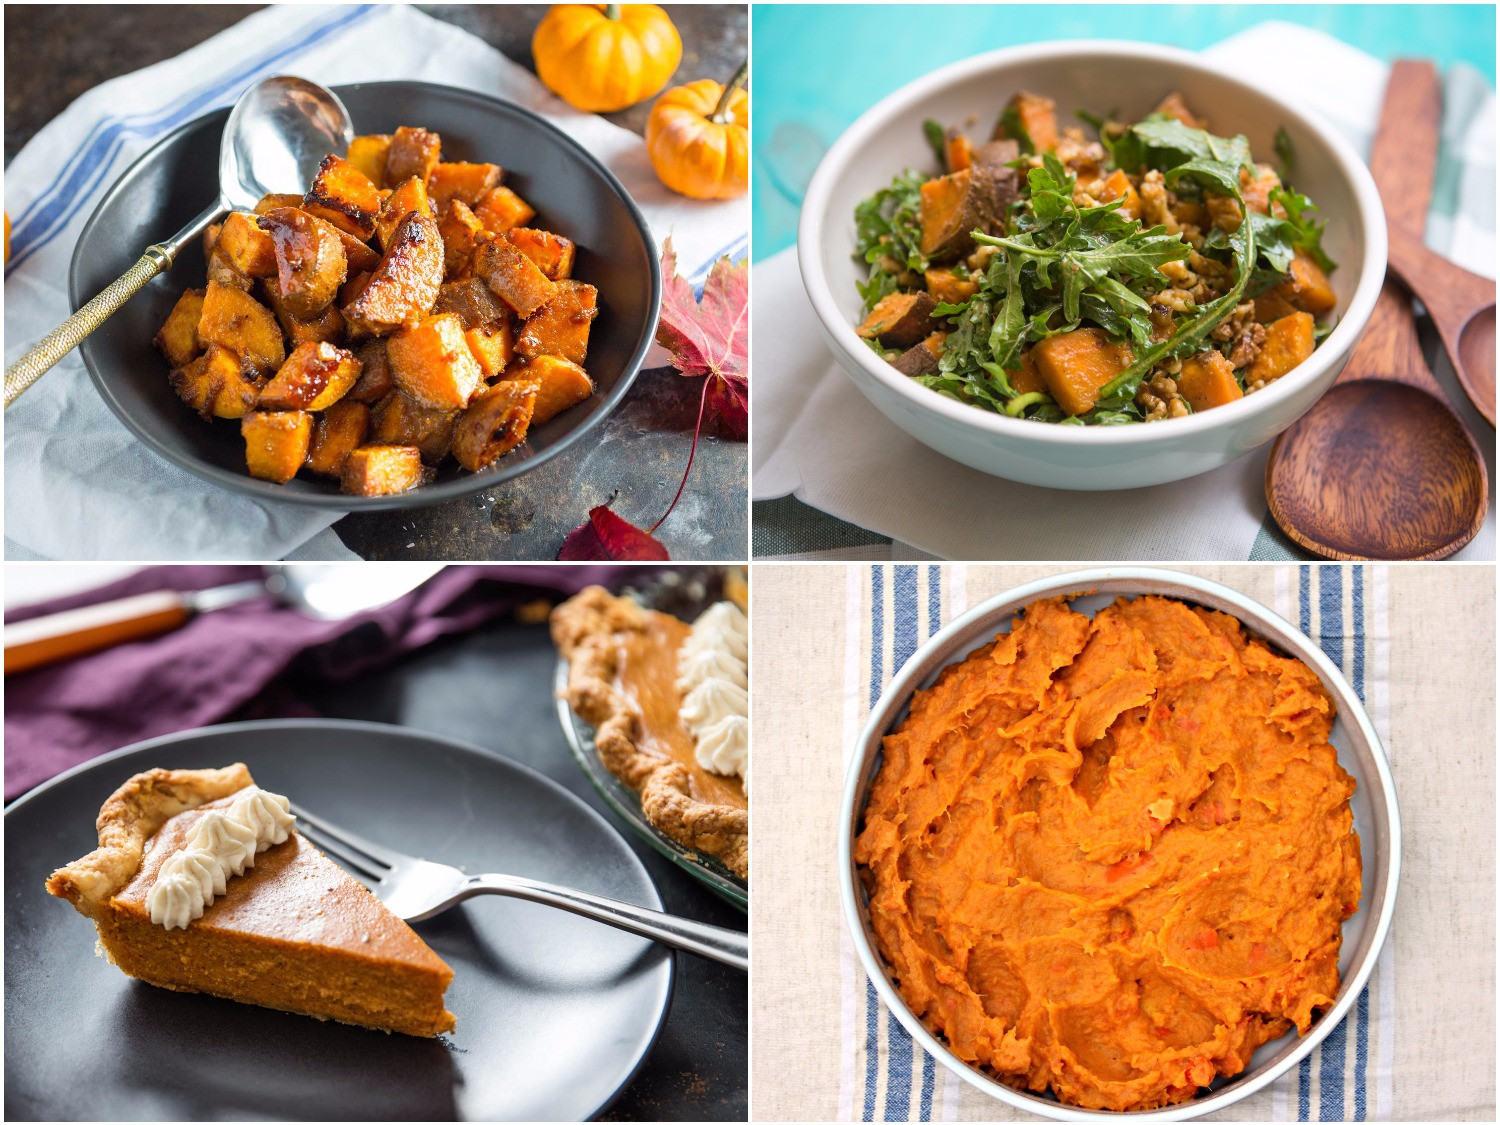 Sweet Potatoes For Thanksgiving  15 Sweet Potato Recipes for Thanksgiving That Are Just